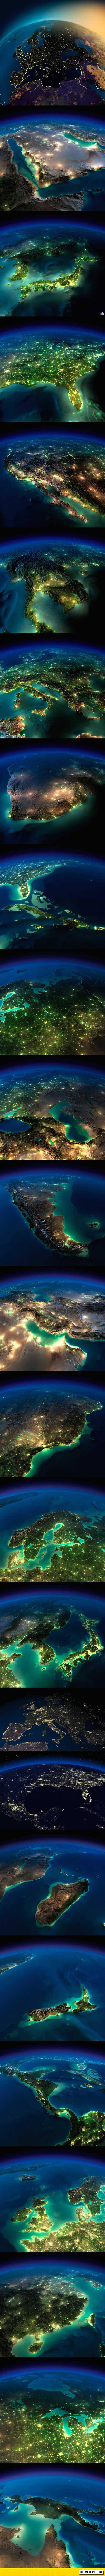 cool-photos-earth-from-space-night